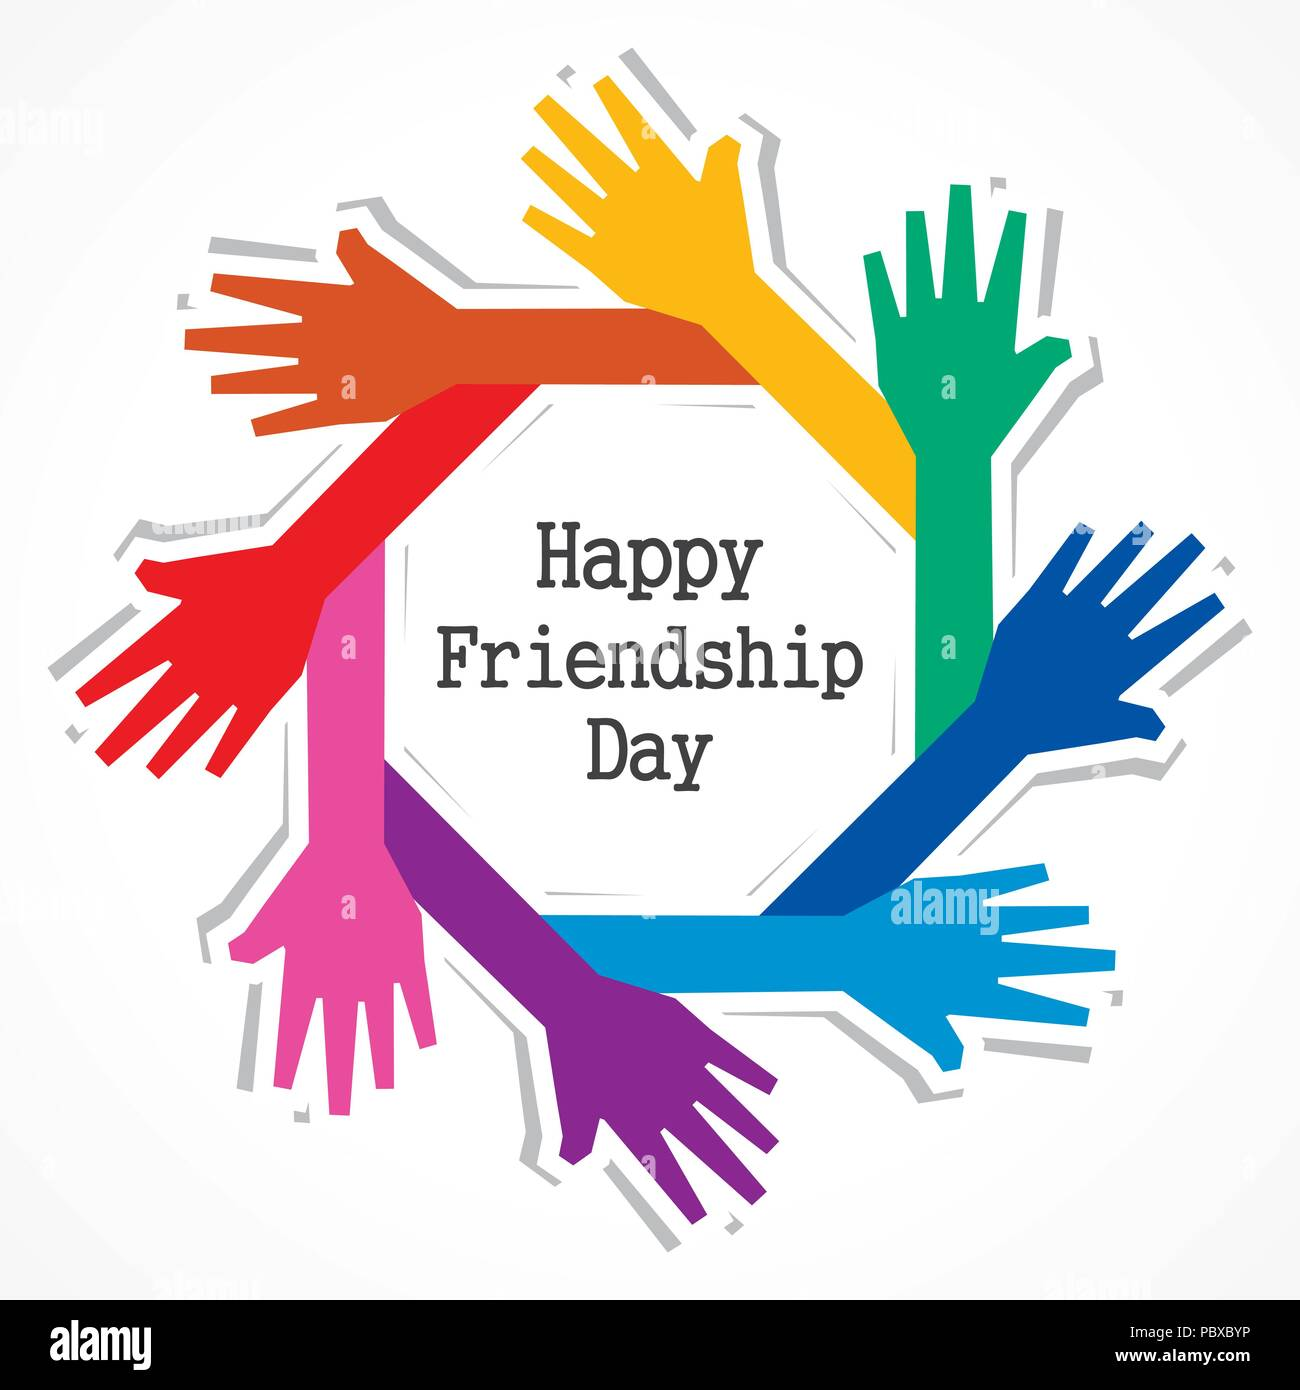 Happy Friendship day vector typographic design. Usable as greeting cards, posters, clothing, t-shirt for your friends.